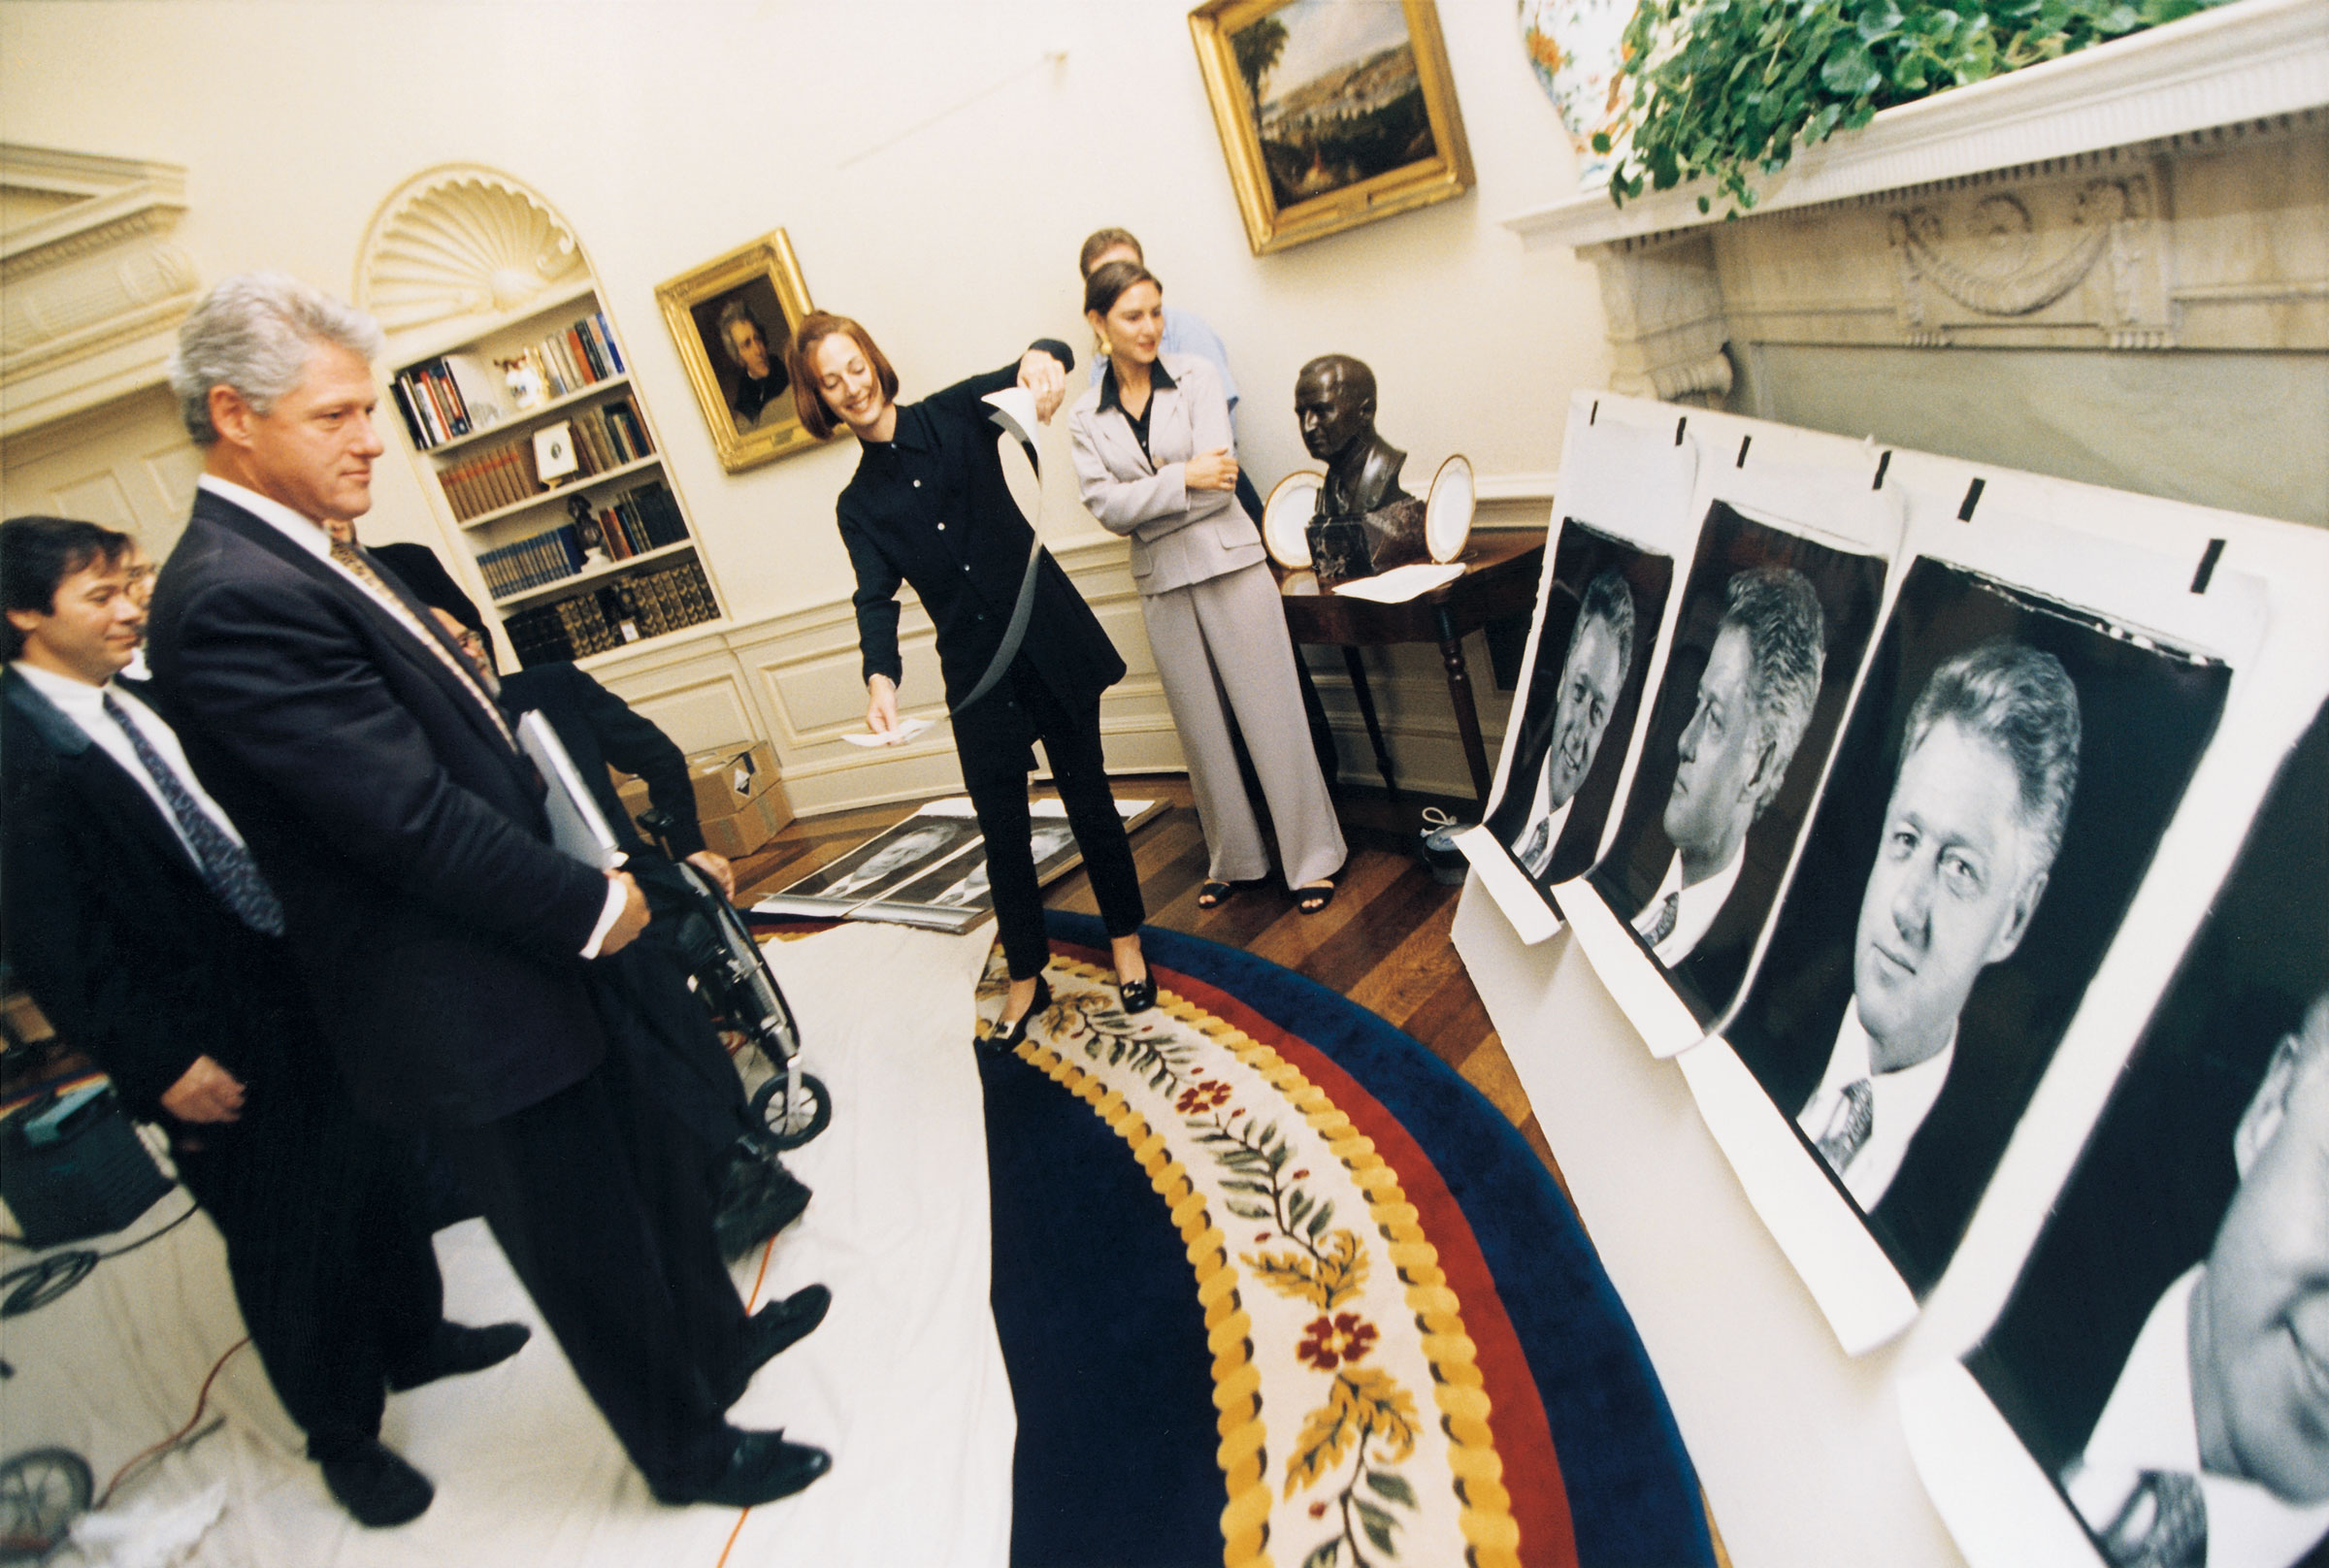 Bill Clinton looking at his Polaroids in the White House, 1996 (Photo by Official White House Photography)